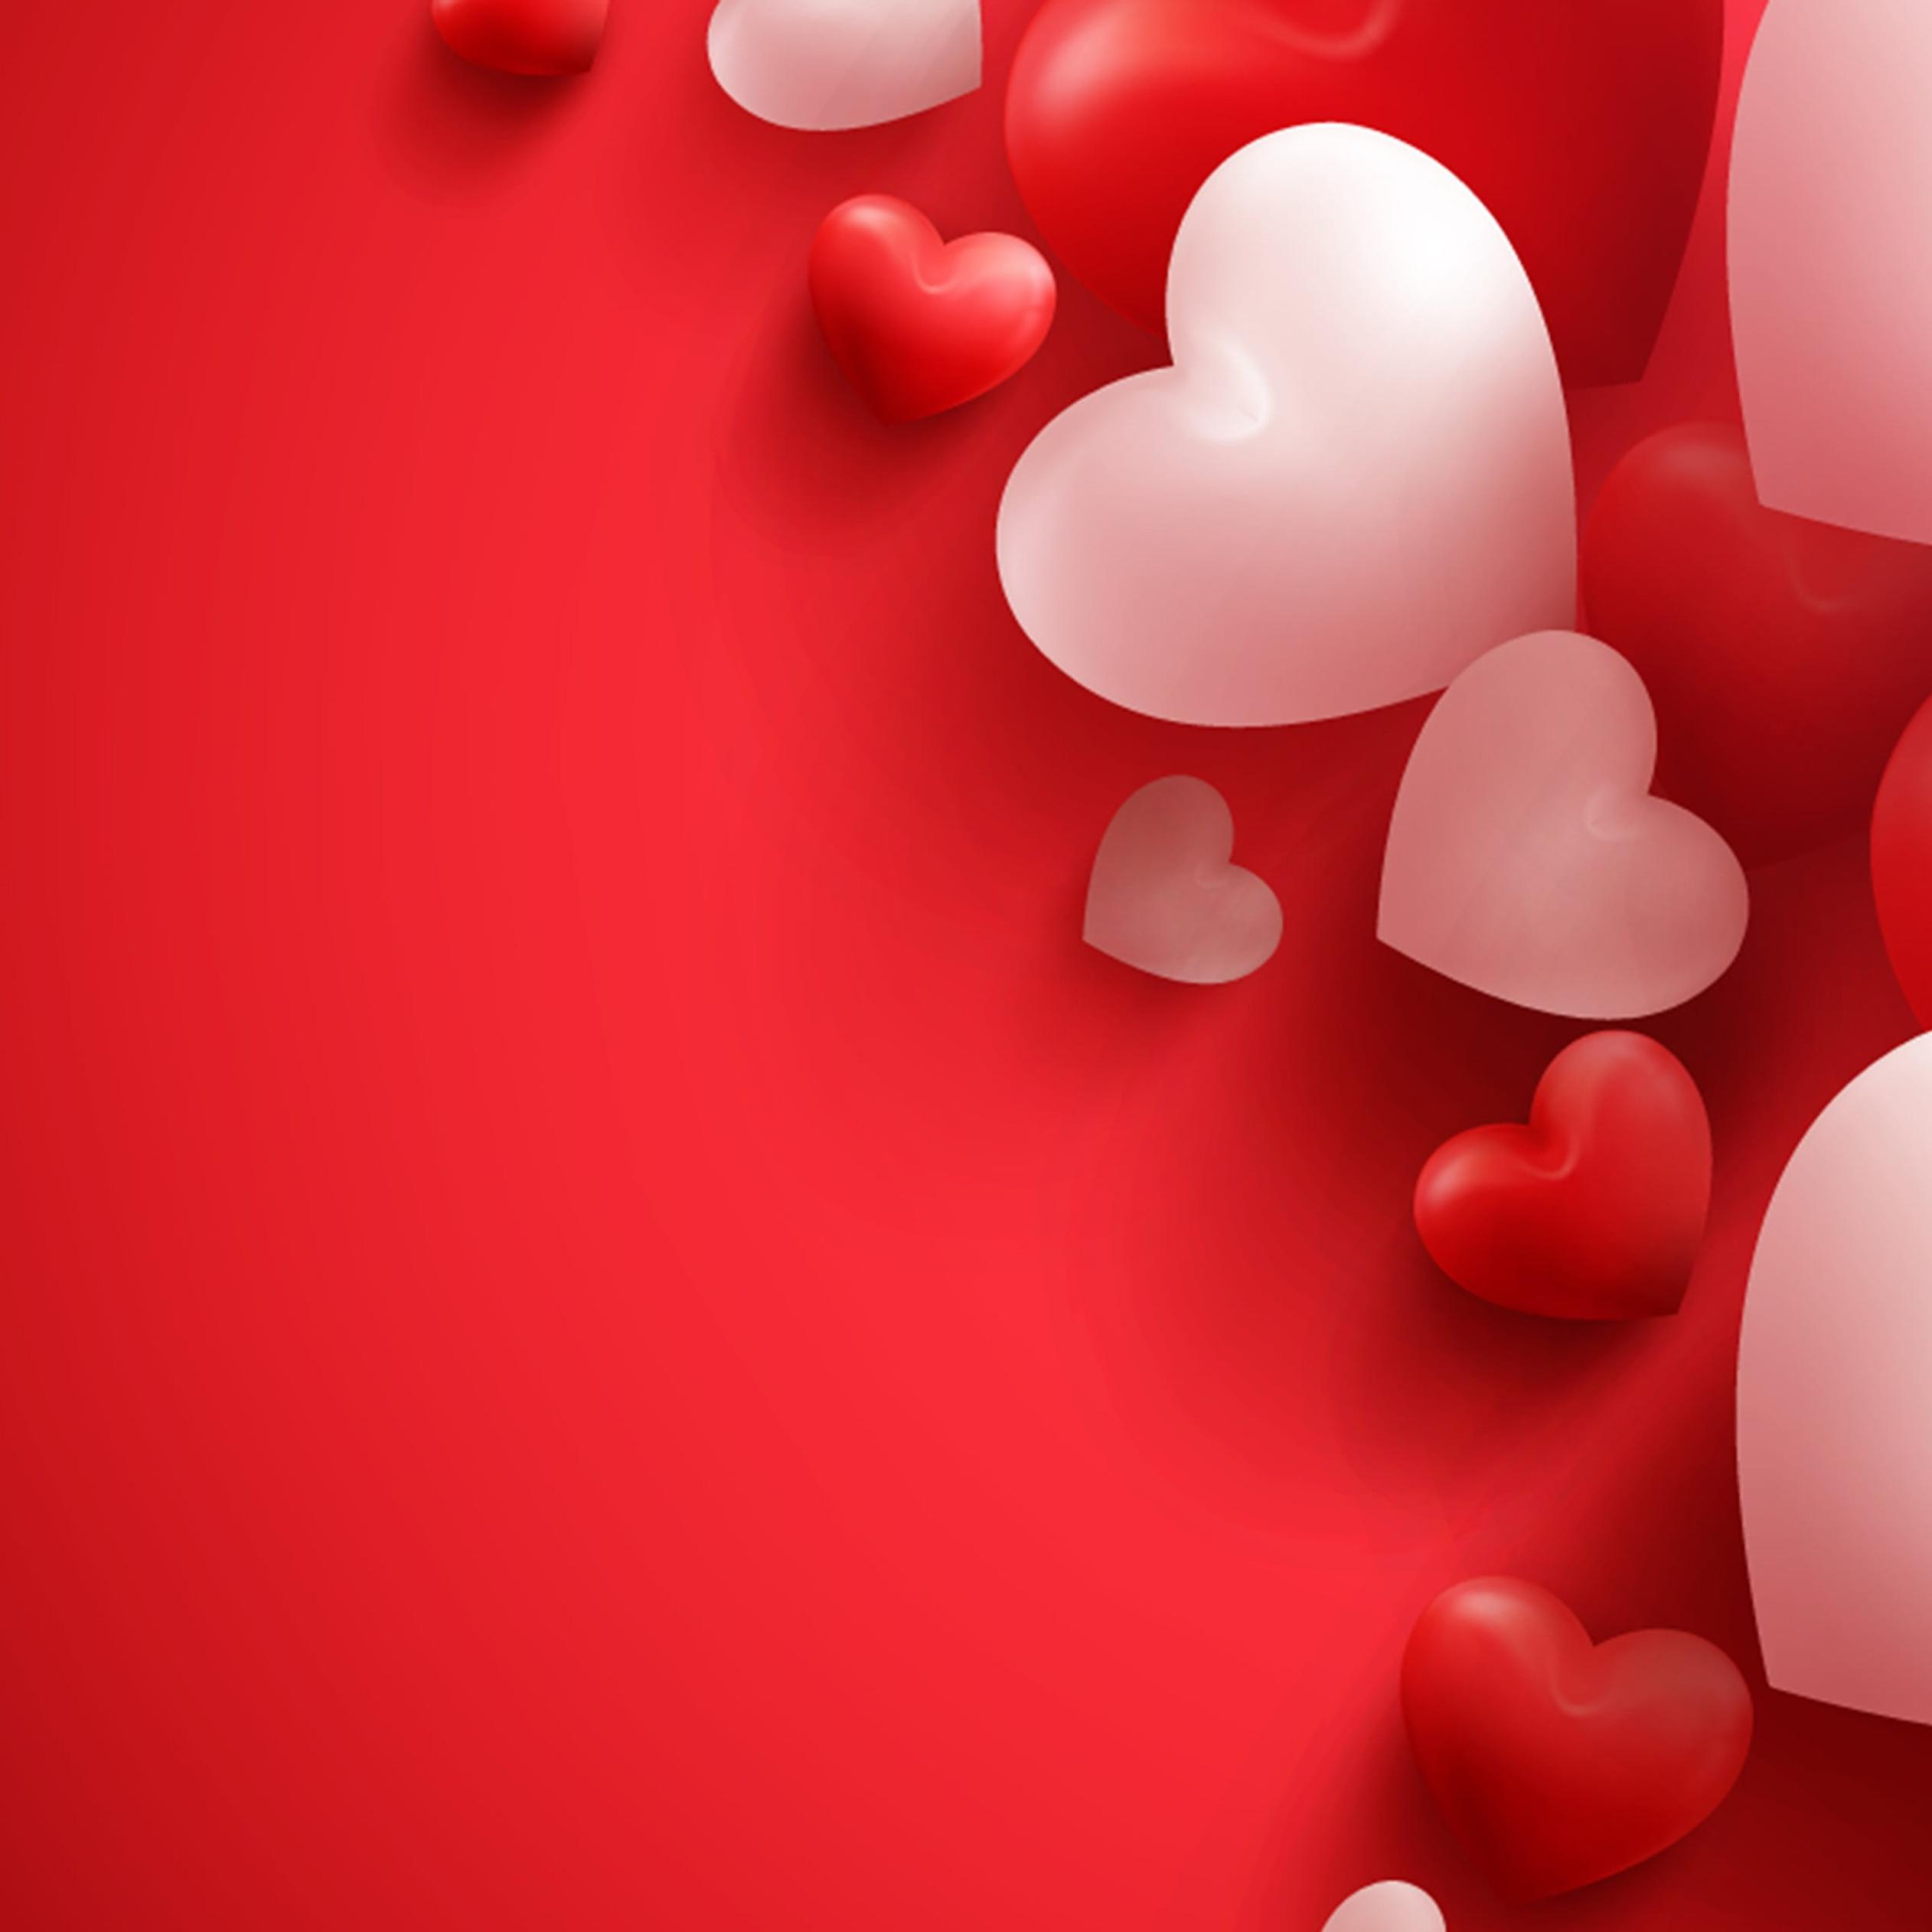 love wallpaper with red and white hearts valentines day 2524x2524